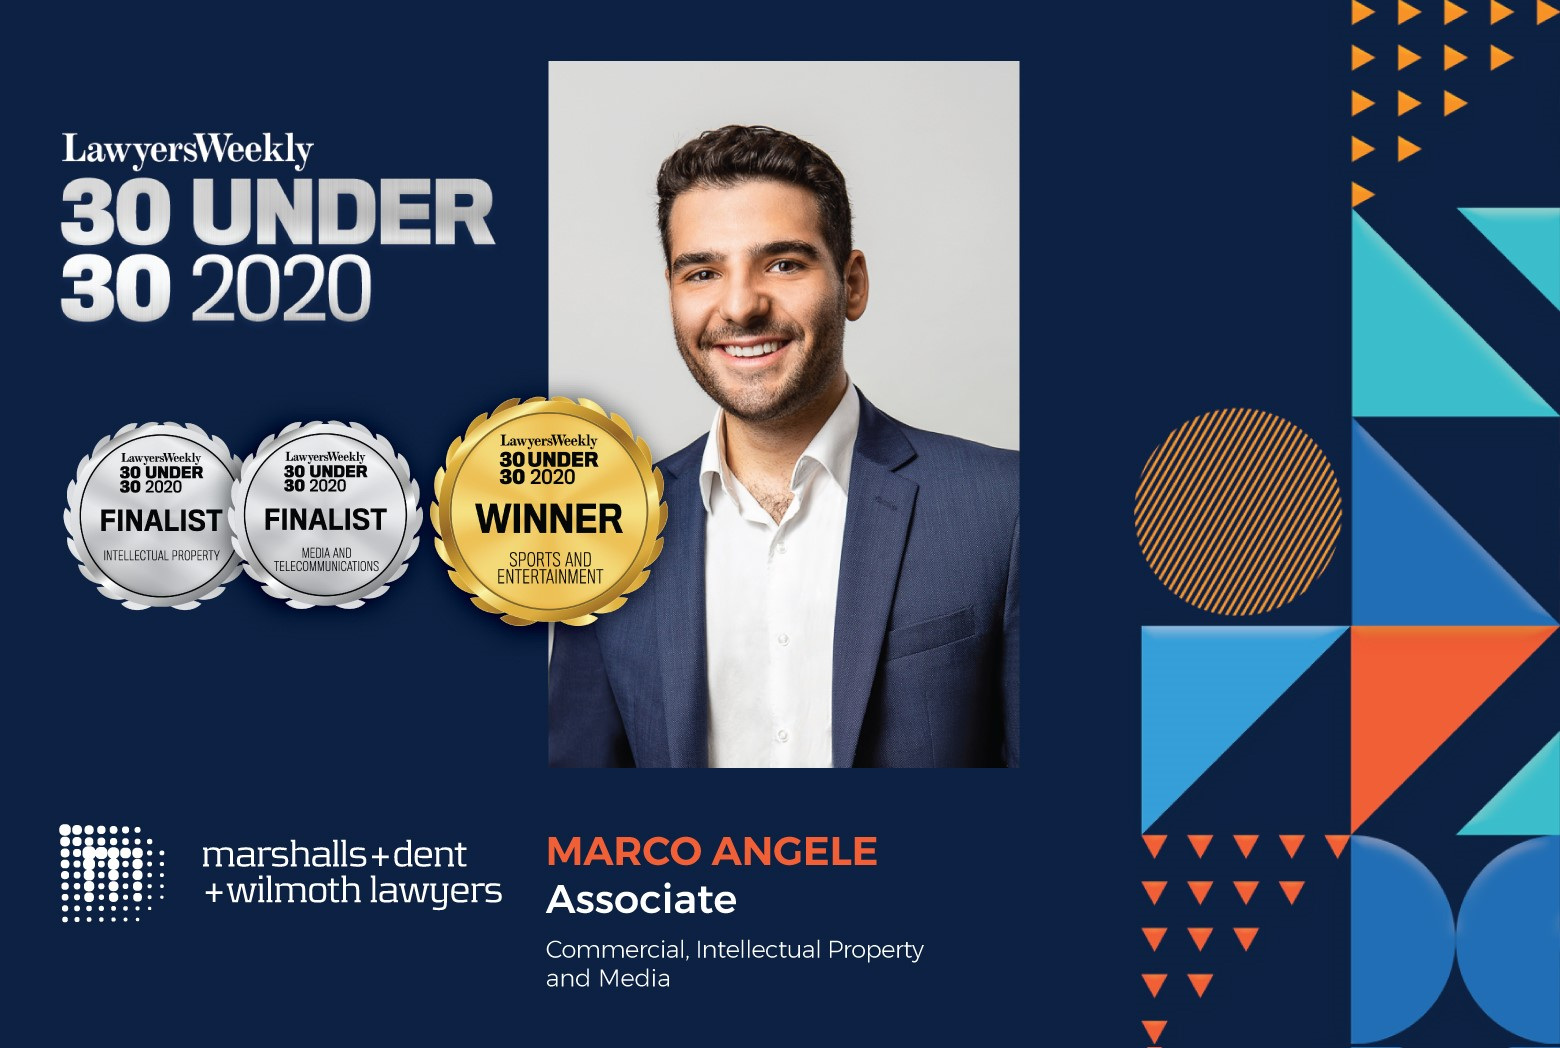 Marco Angele wins Sports and Entertainment category at the Lawyers Weekly 30 Under 30 Awards 2020